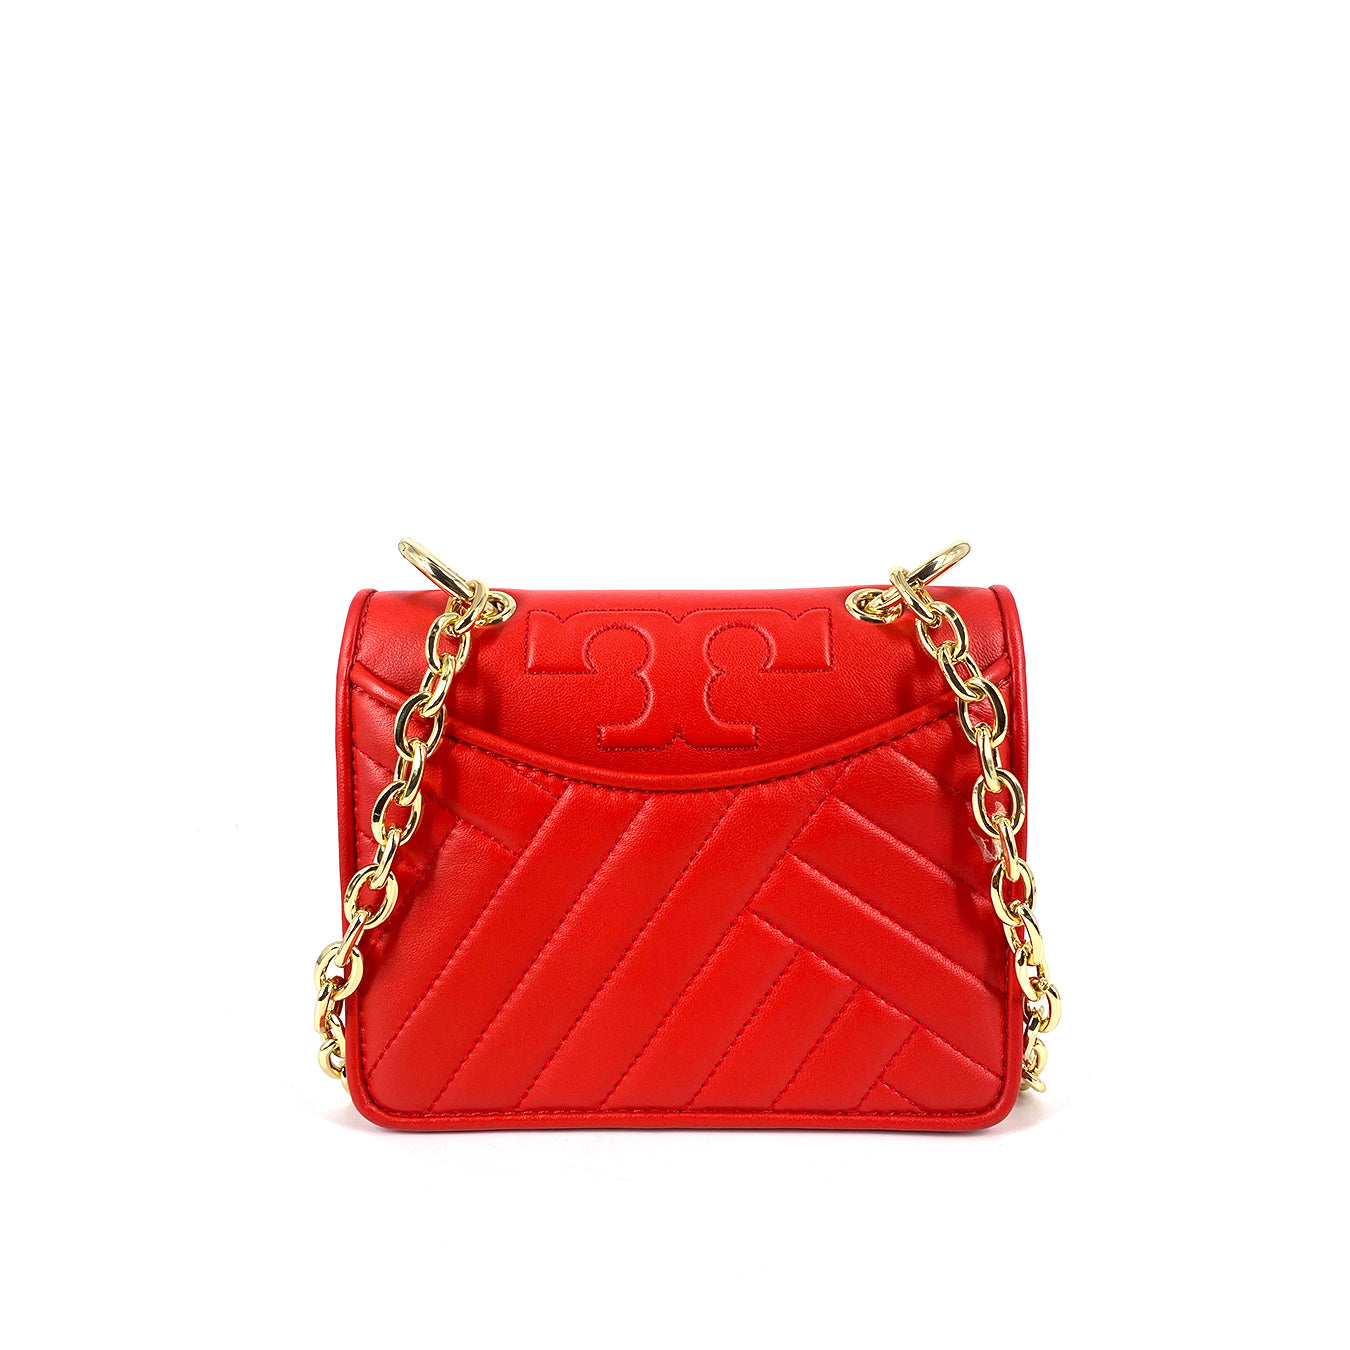 Tory Burch ALEXA MINI SHOULDERBAG POPPY ORANGE